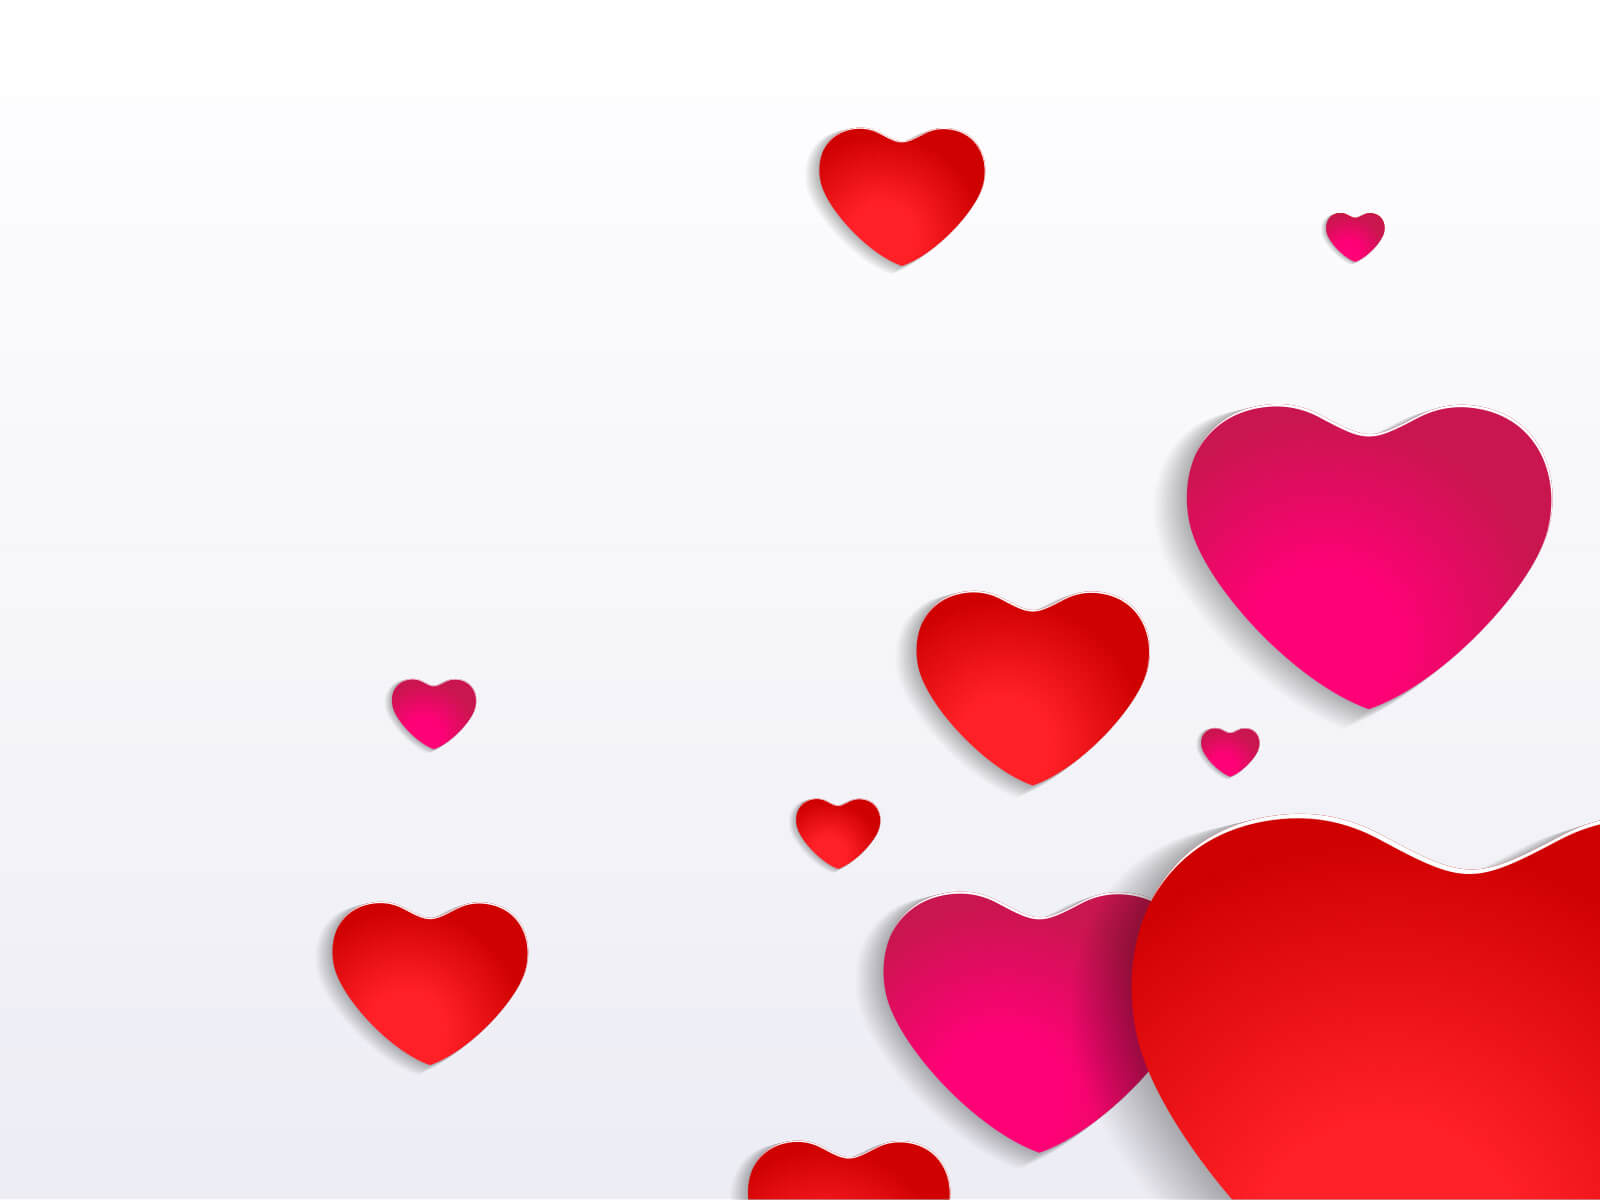 Valentines Day Powerpoint Templates - Love, Red - Free Ppt regarding Valentine Powerpoint Templates Free